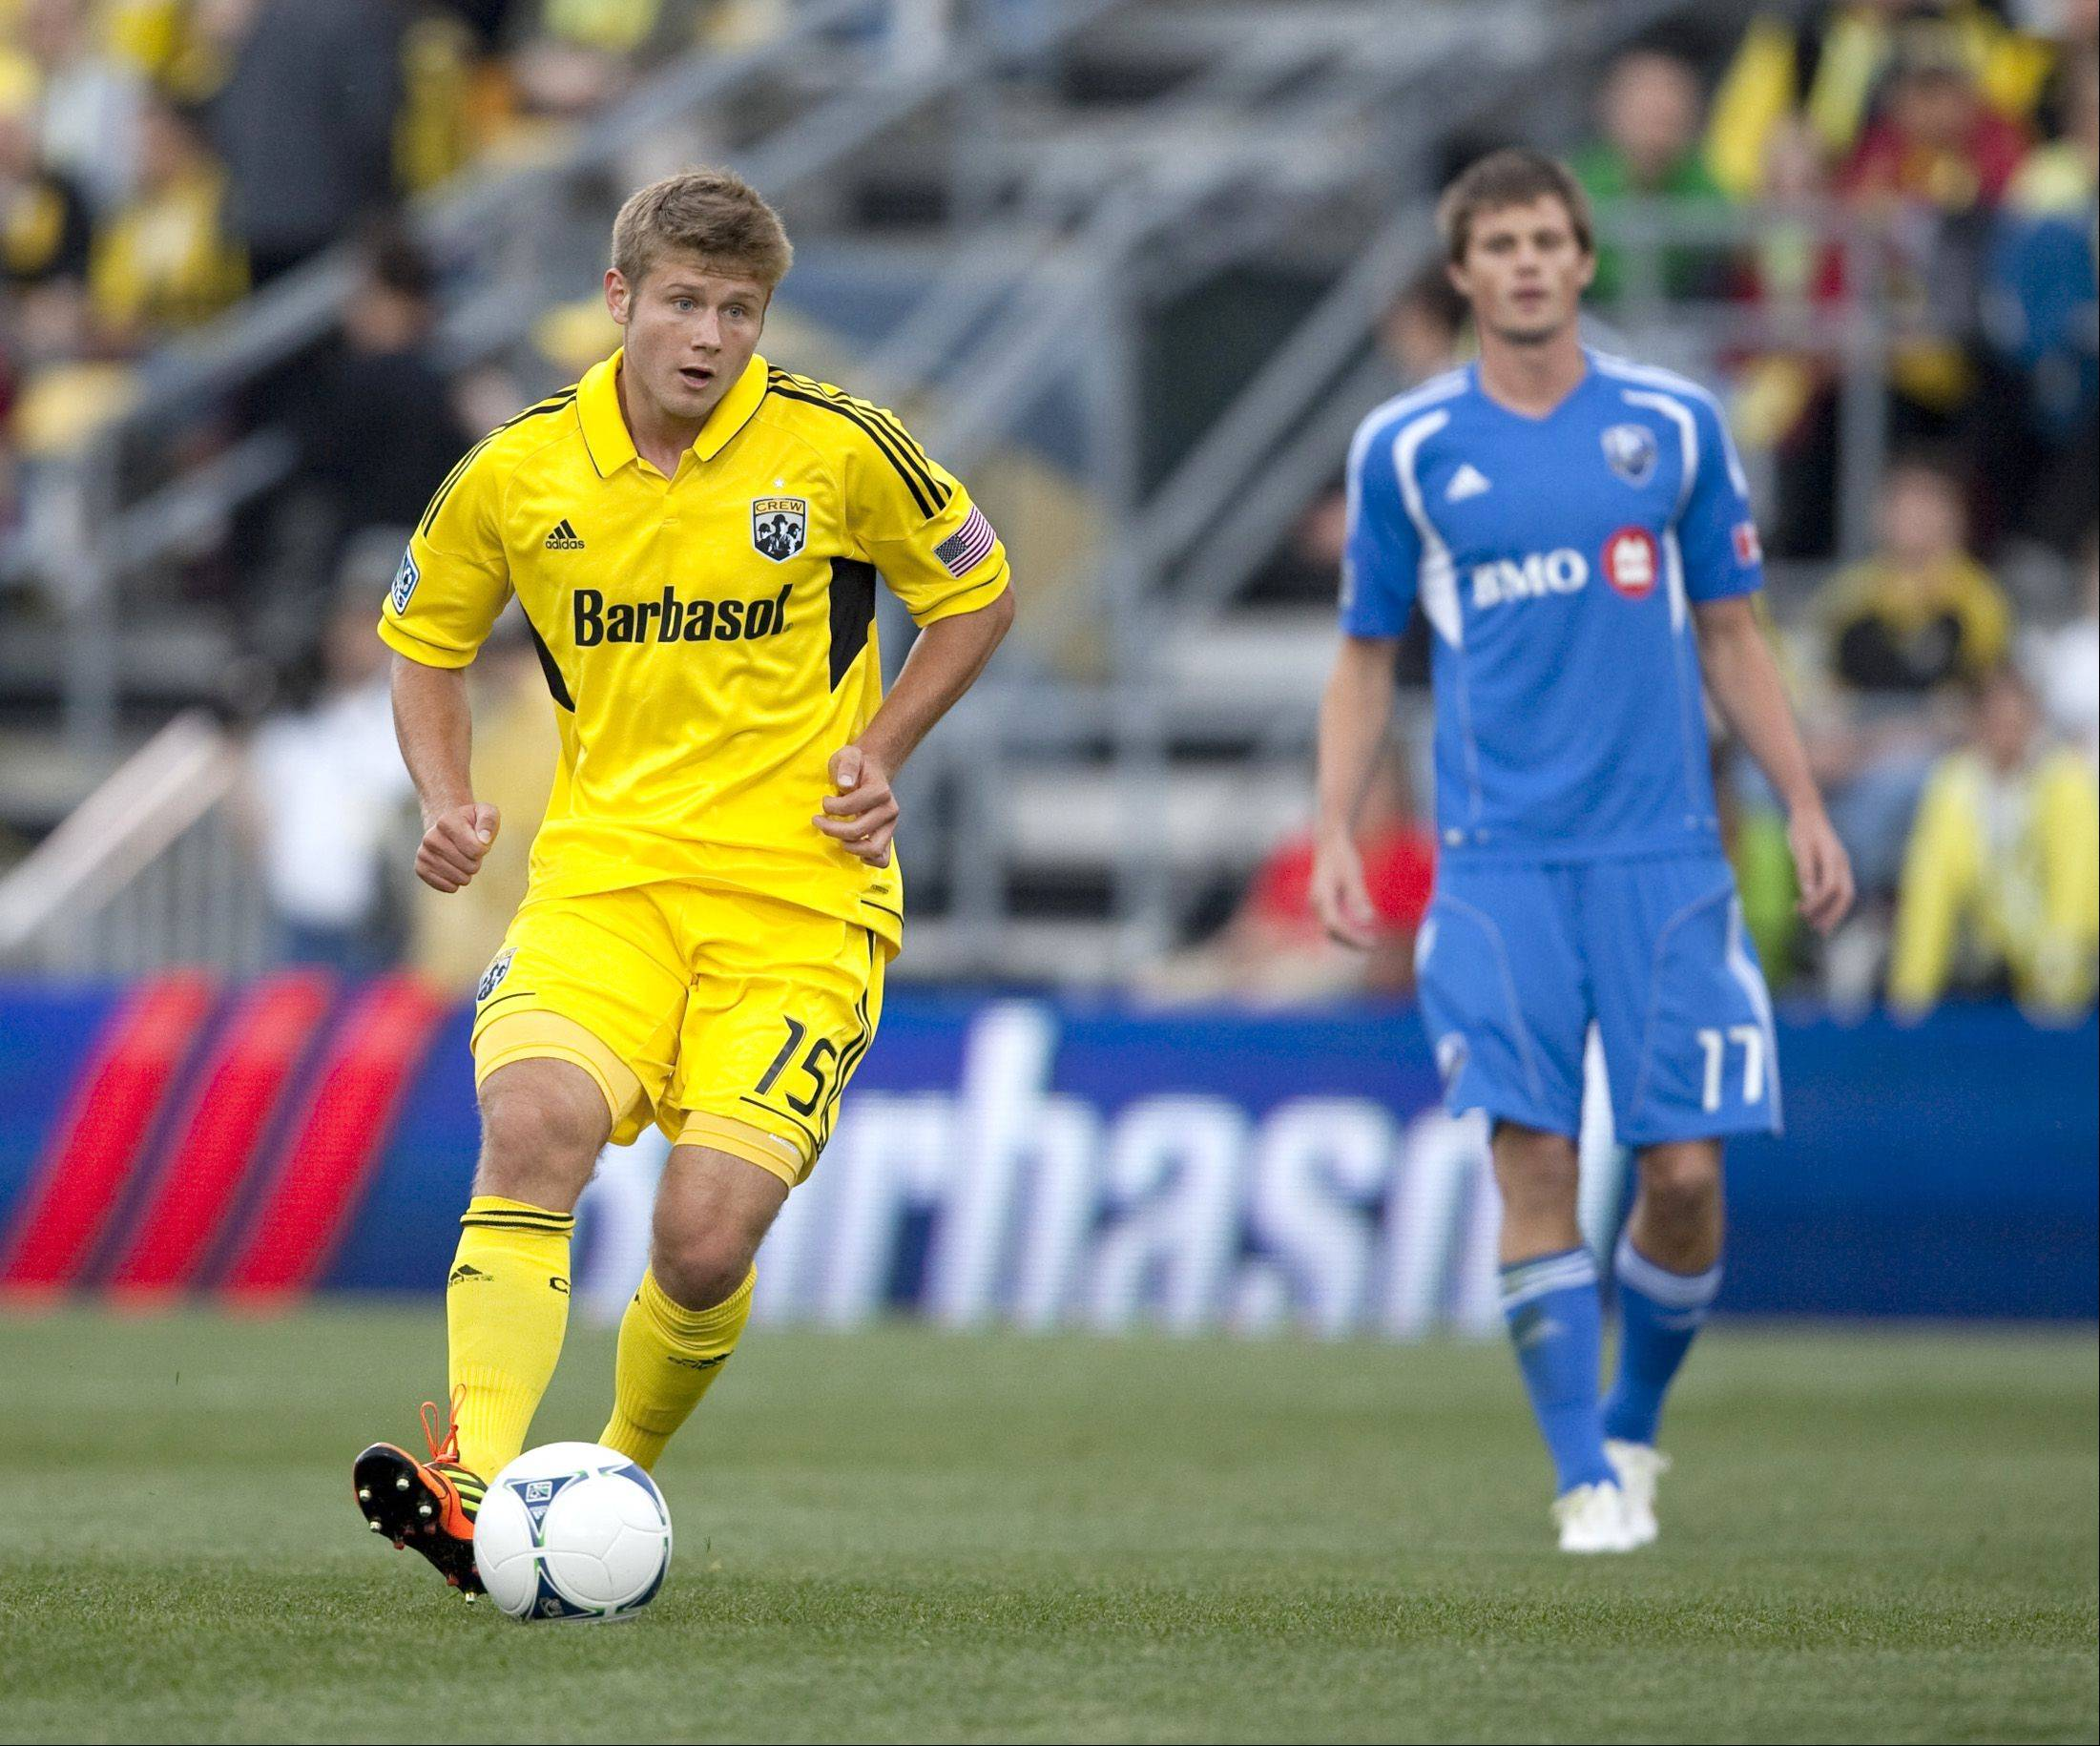 Visitation and funeral services for Columbus Crew midfielder Kirk Urso, left, will take place this weekend. The 22-year-old soccer star from Lombard died at a restaurant Sunday, and the Columbus Crew will honor him with several tributes before Saturday's MLS game.